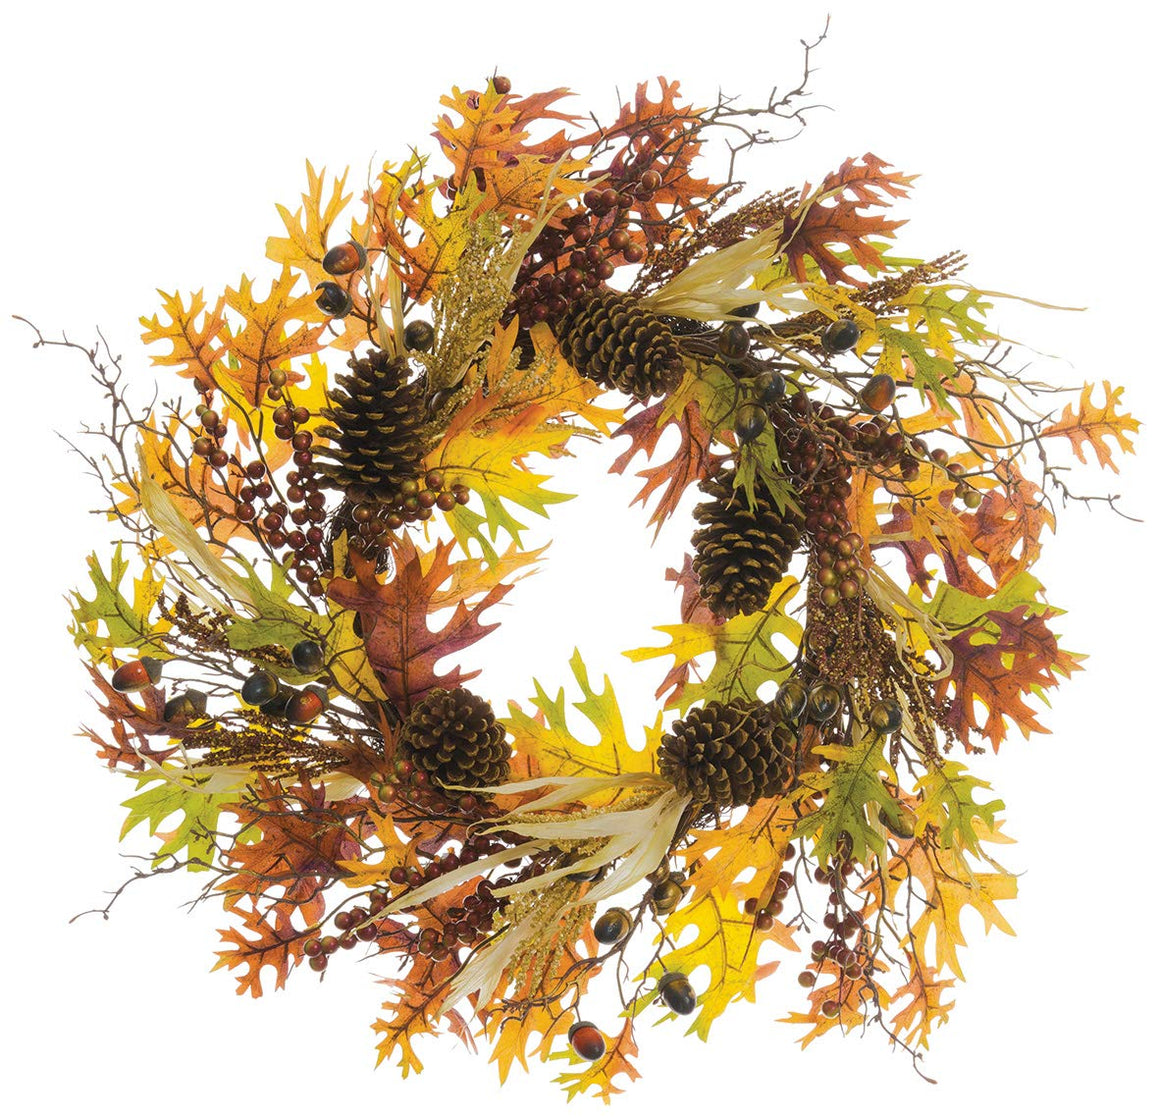 TenWaterloo 24 Inch Fall Wreath with Pine Cones, Berries and Acorns, Fall Leaves in Gold, Sage and Browns, Artificial Floral